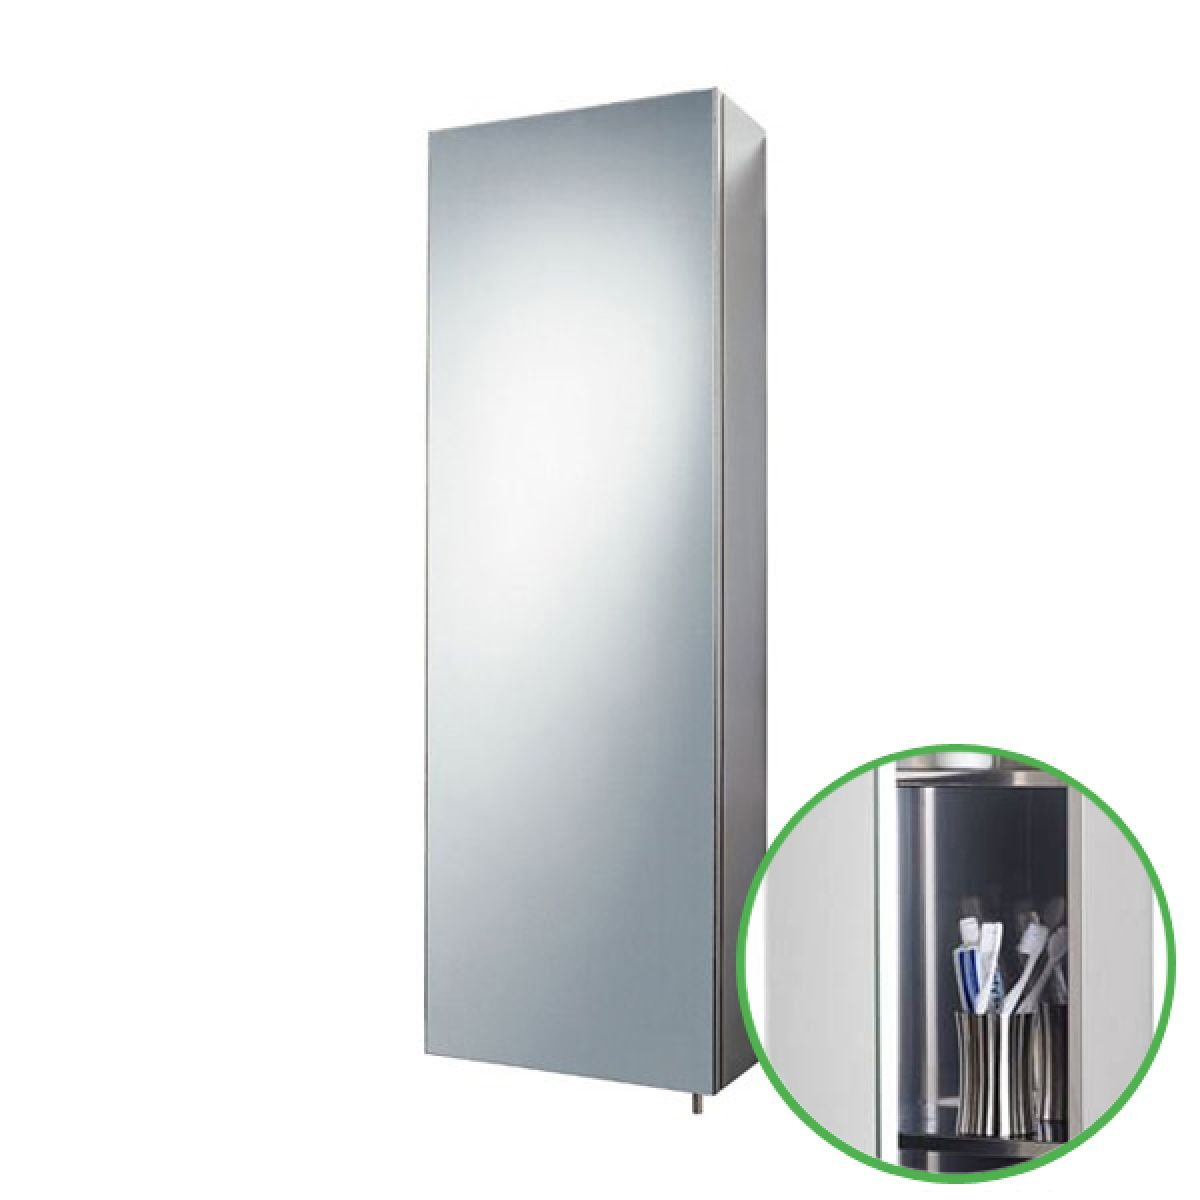 Zenith Stainless Steel Tall Bathroom Cabinet